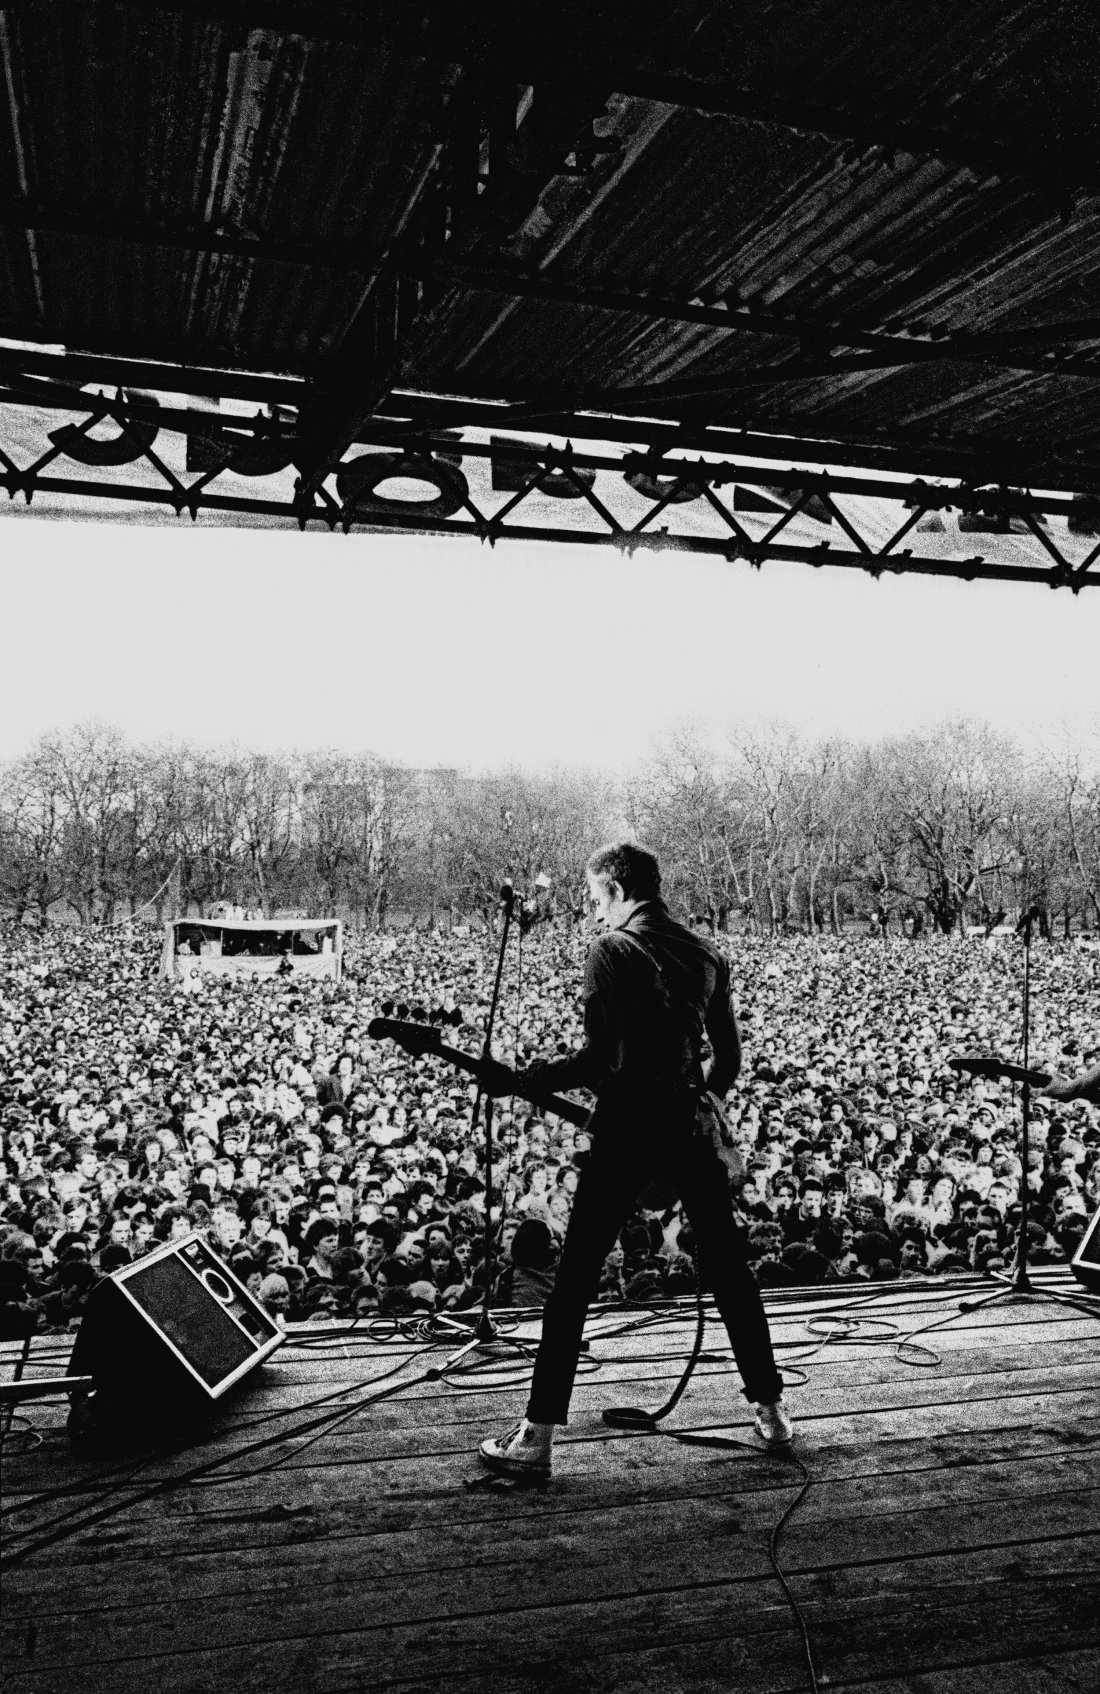 Paul Simonon, The Clash, Rock Against Racism / Anti Nazi League Carnival 1, Victoria Park, East London 30 April 1978. The Carnival line-up also included punk poet Patrick Fitzgerald, X-ray Spex, Steel Pulse and Tom Robinson Band